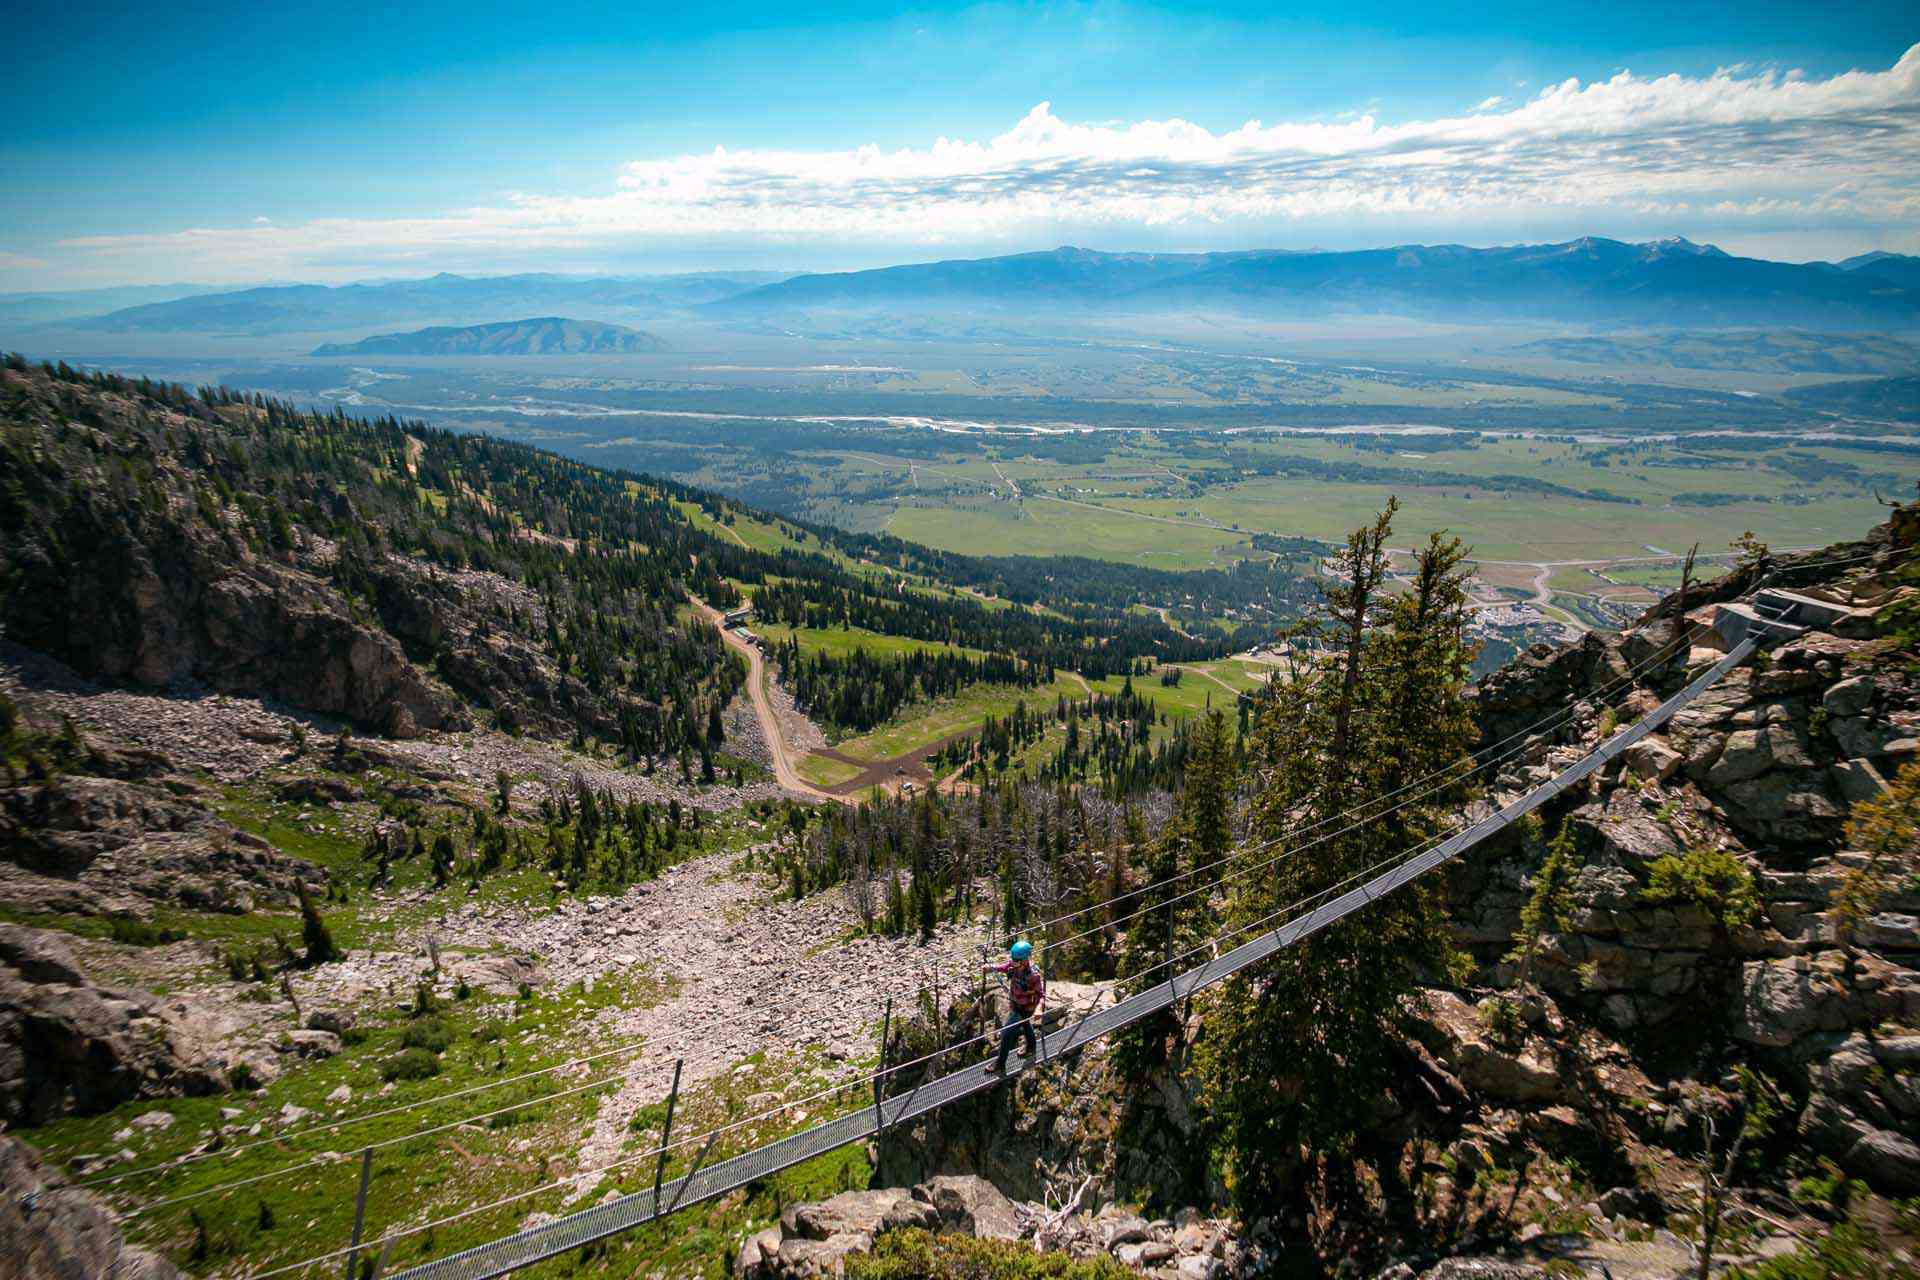 One person walking across a suspension bridge on Jackson Hole Mountain in summer